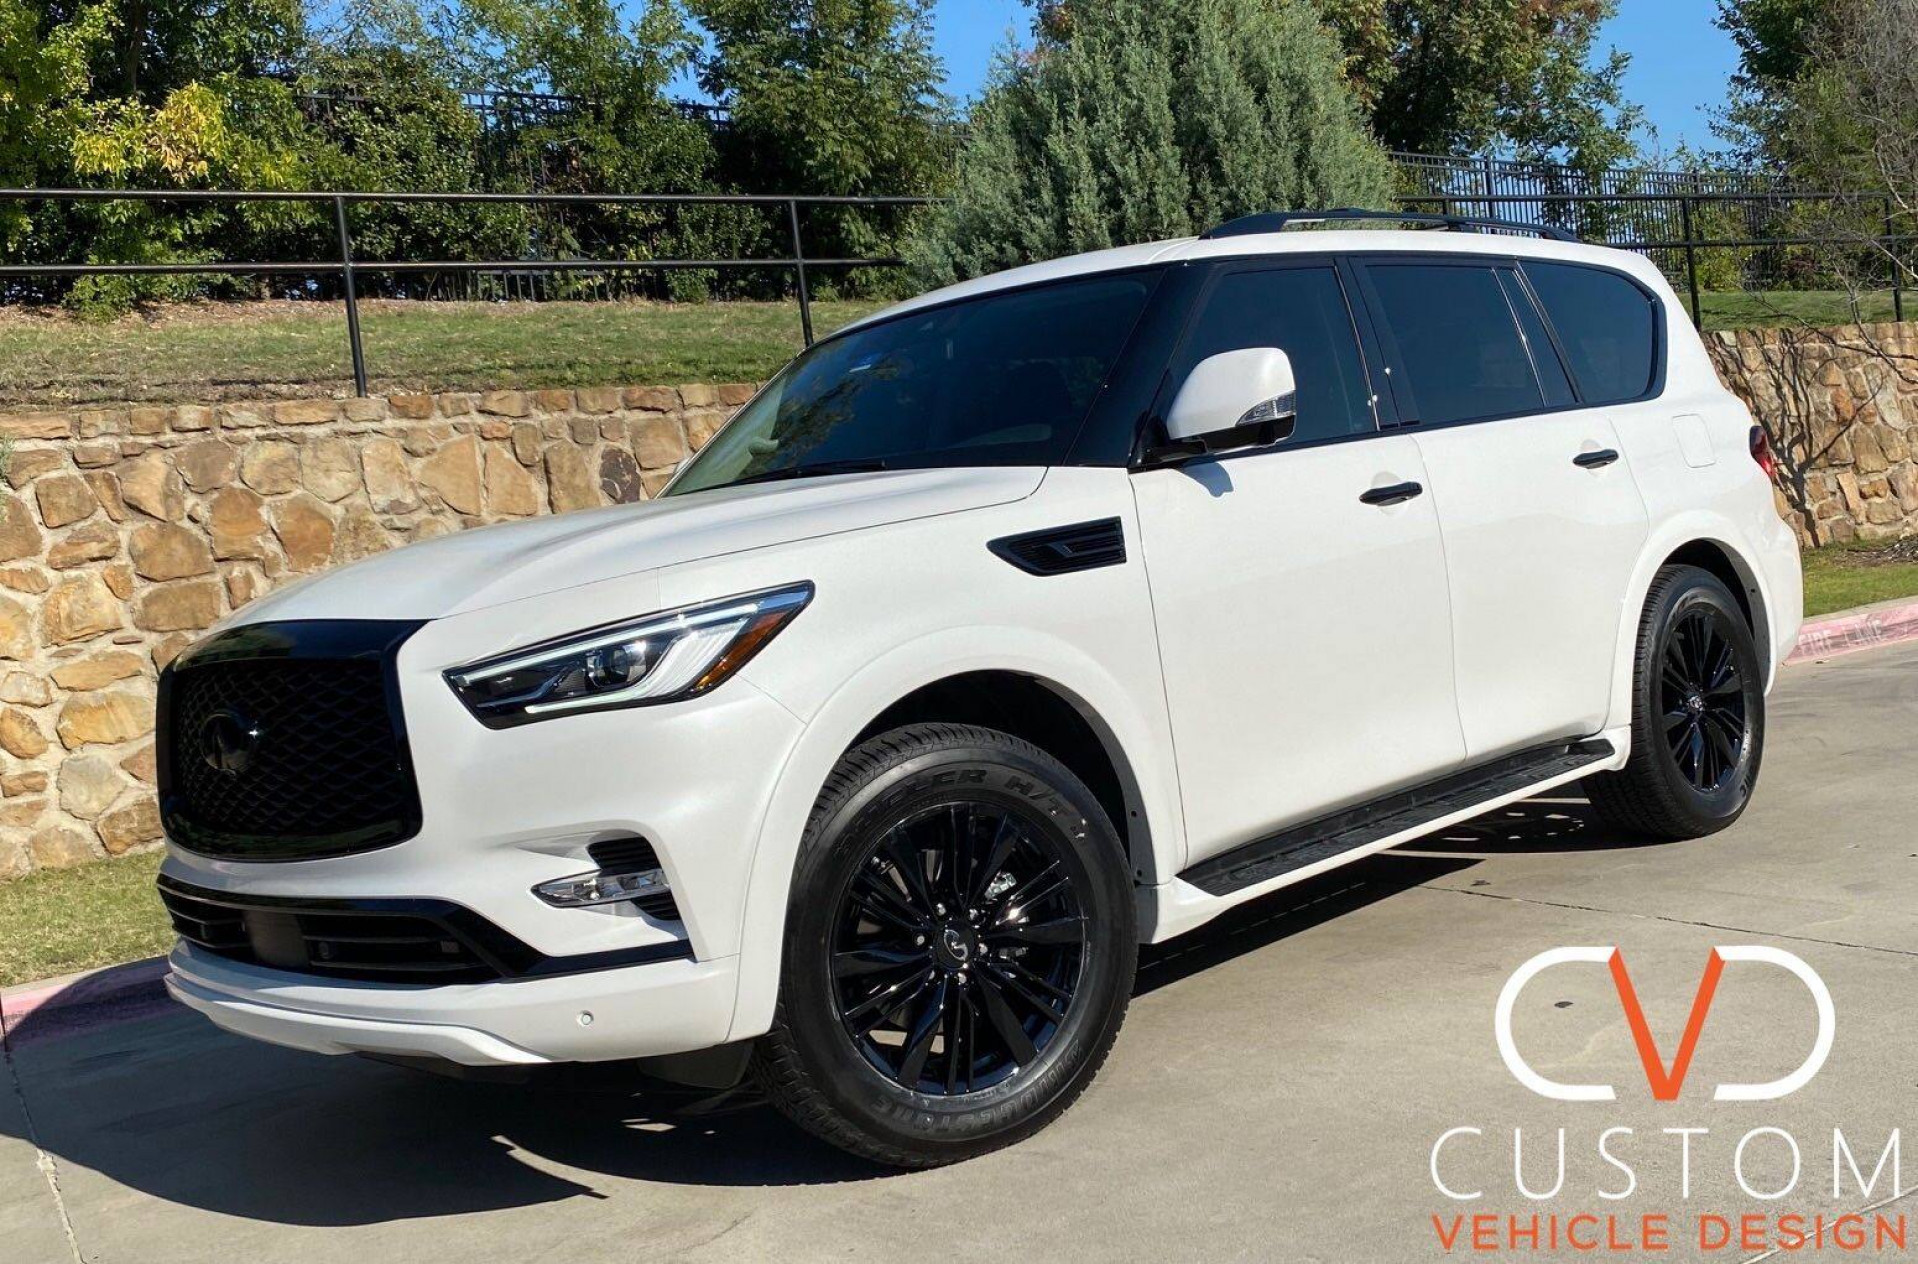 2020 Infiniti QX80 with custom blackout package